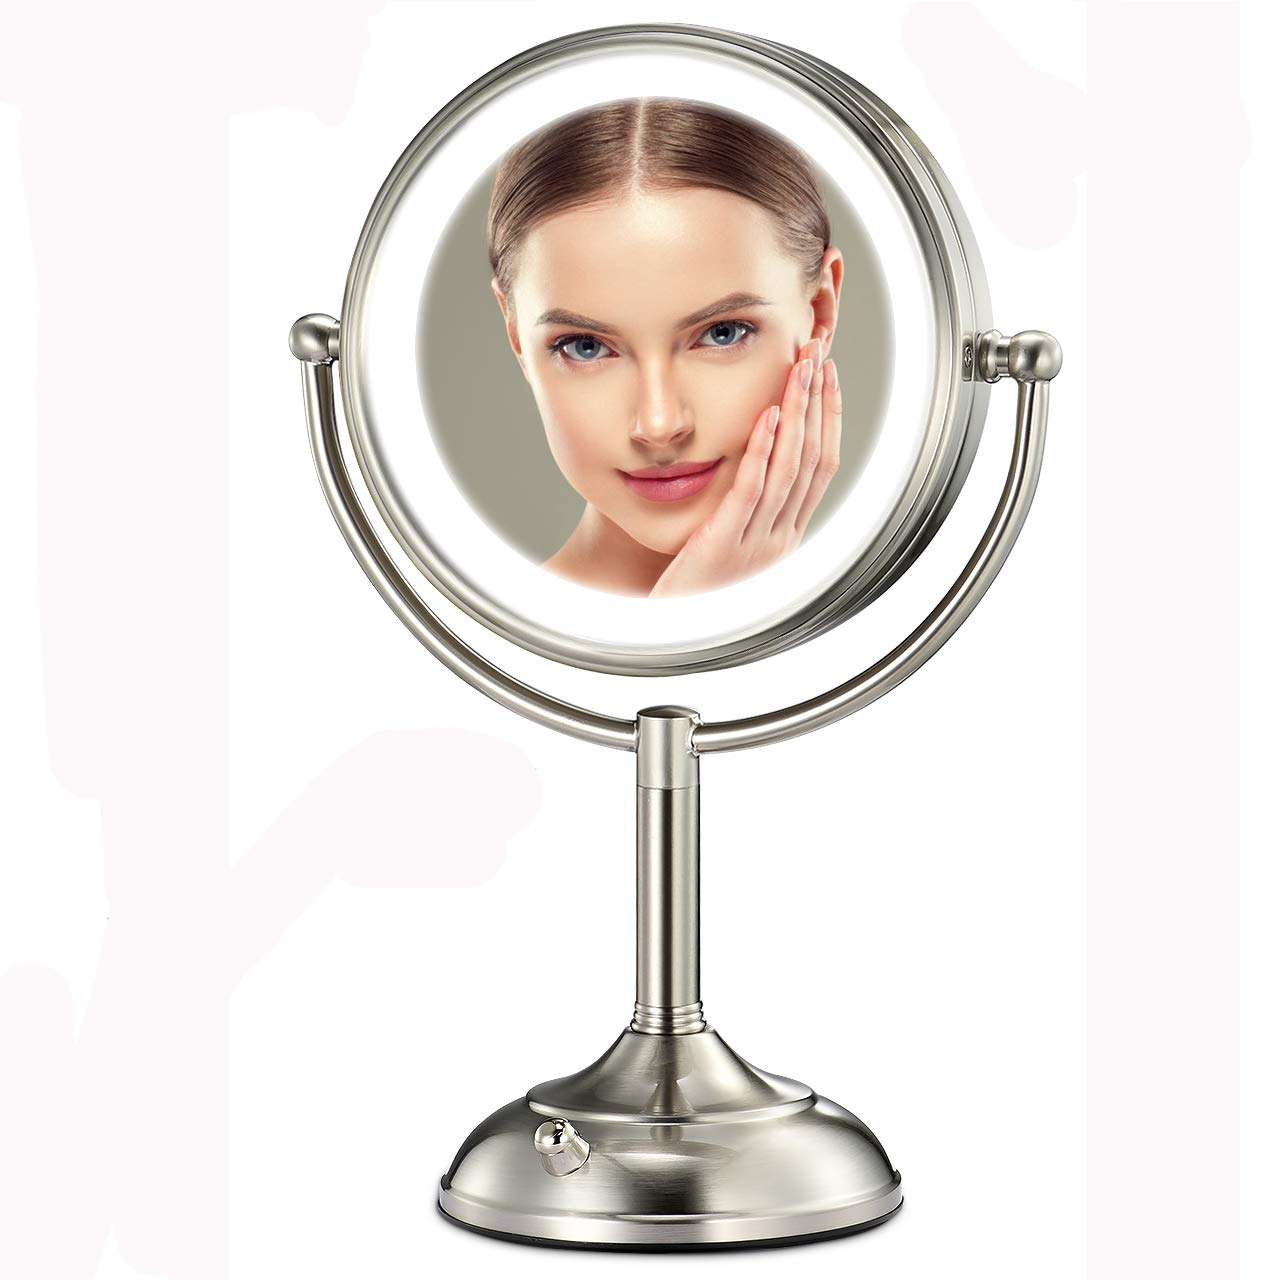 Professional 7.5'' Lighted Makeup Mirror, 10X Magnifying Vanity Mirror with 28 Medical LED Lights, Senior Pearl Nickel Cosmetic Mirror,Brightness Adjustable(0-1000Lux) Desk Lamp Night Light Alternative